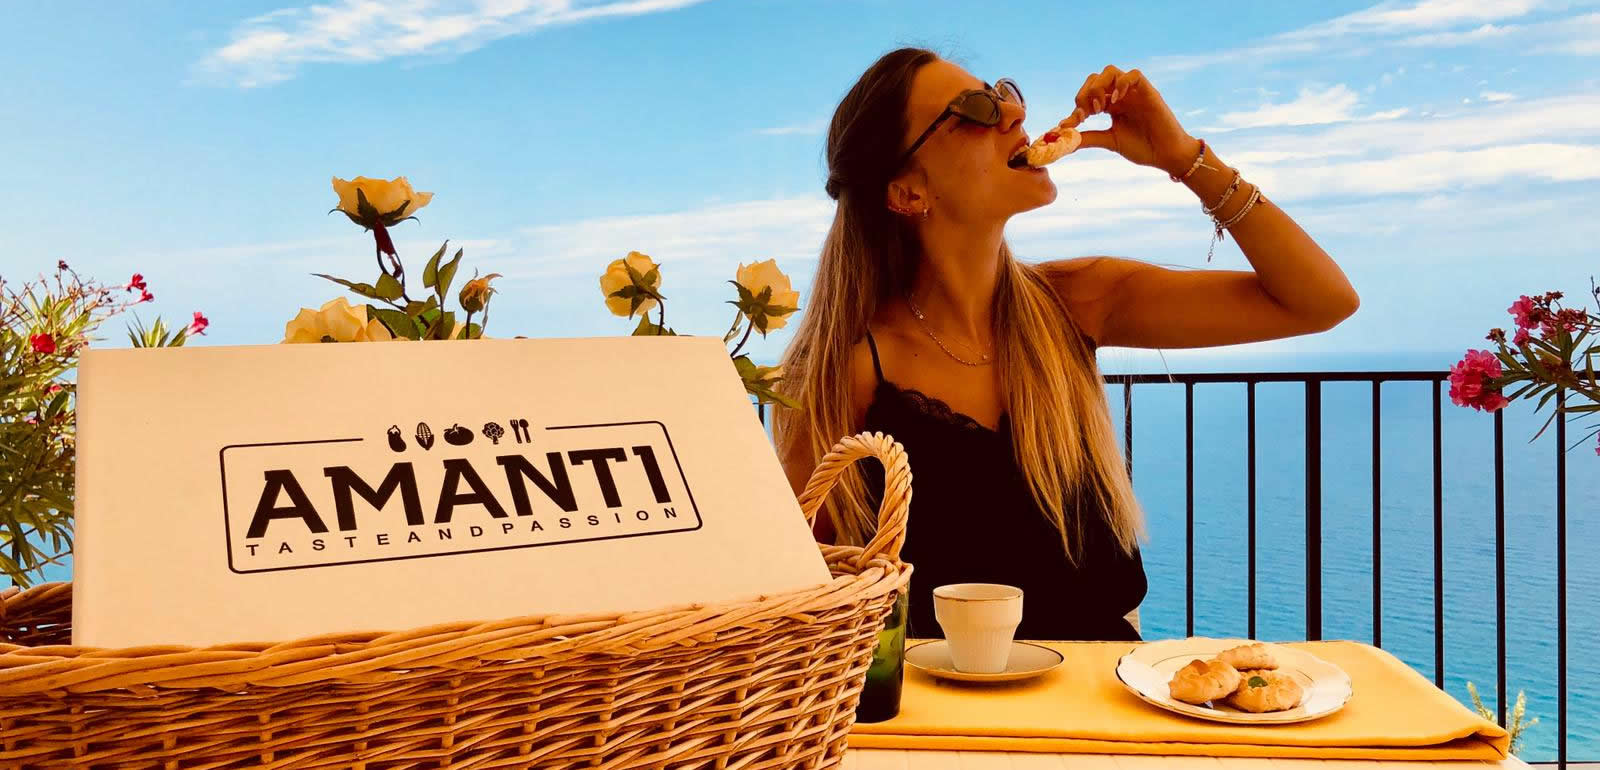 Amanti - Taste and passion